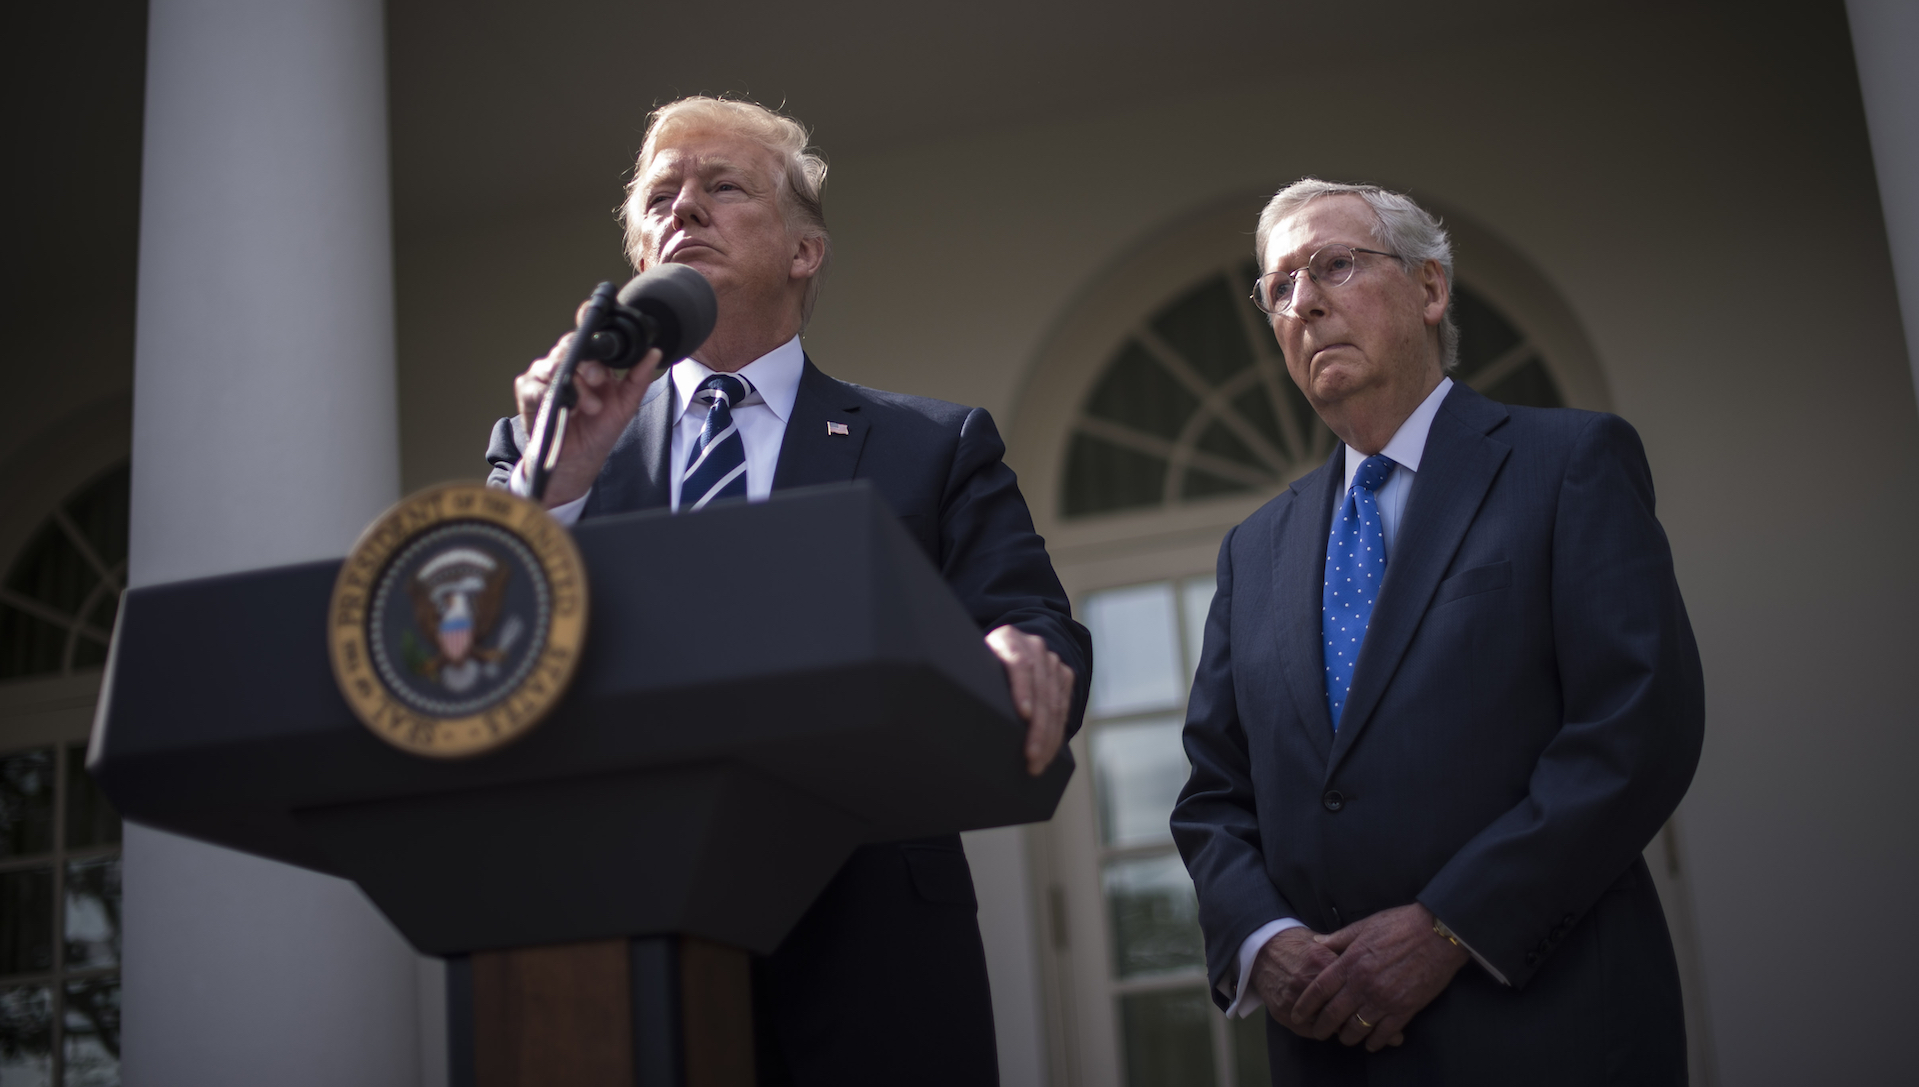 Trump's dumbfounding, expansive press conference with Mitch McConnell, annotated